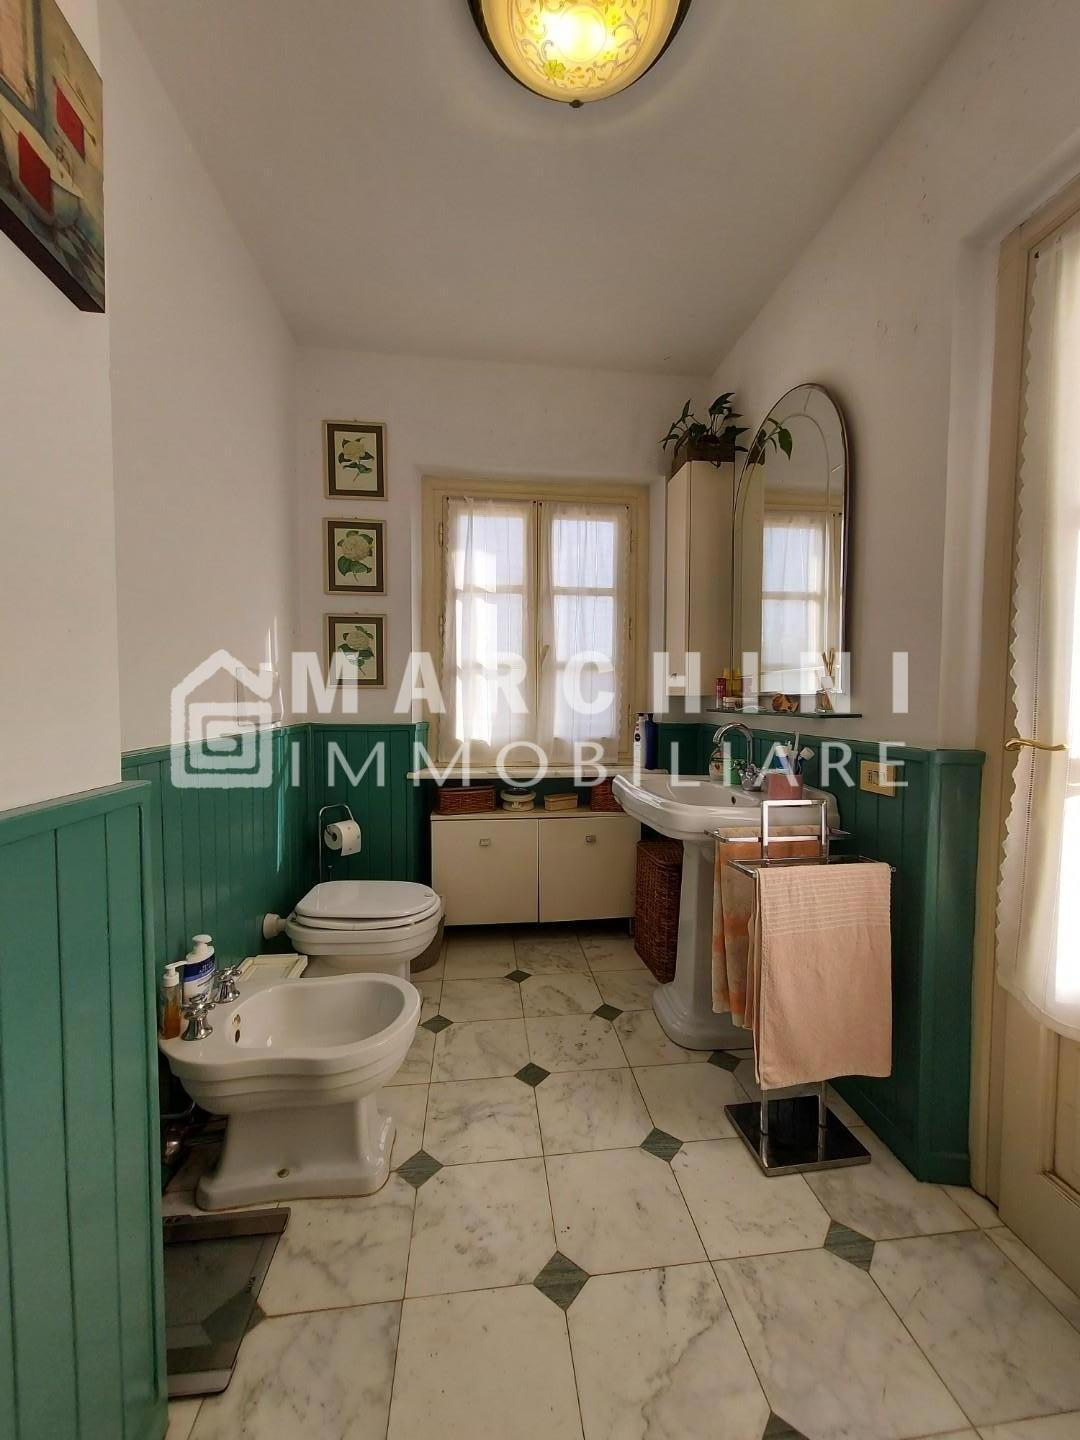 Photo 28/45 for ref. IA1583